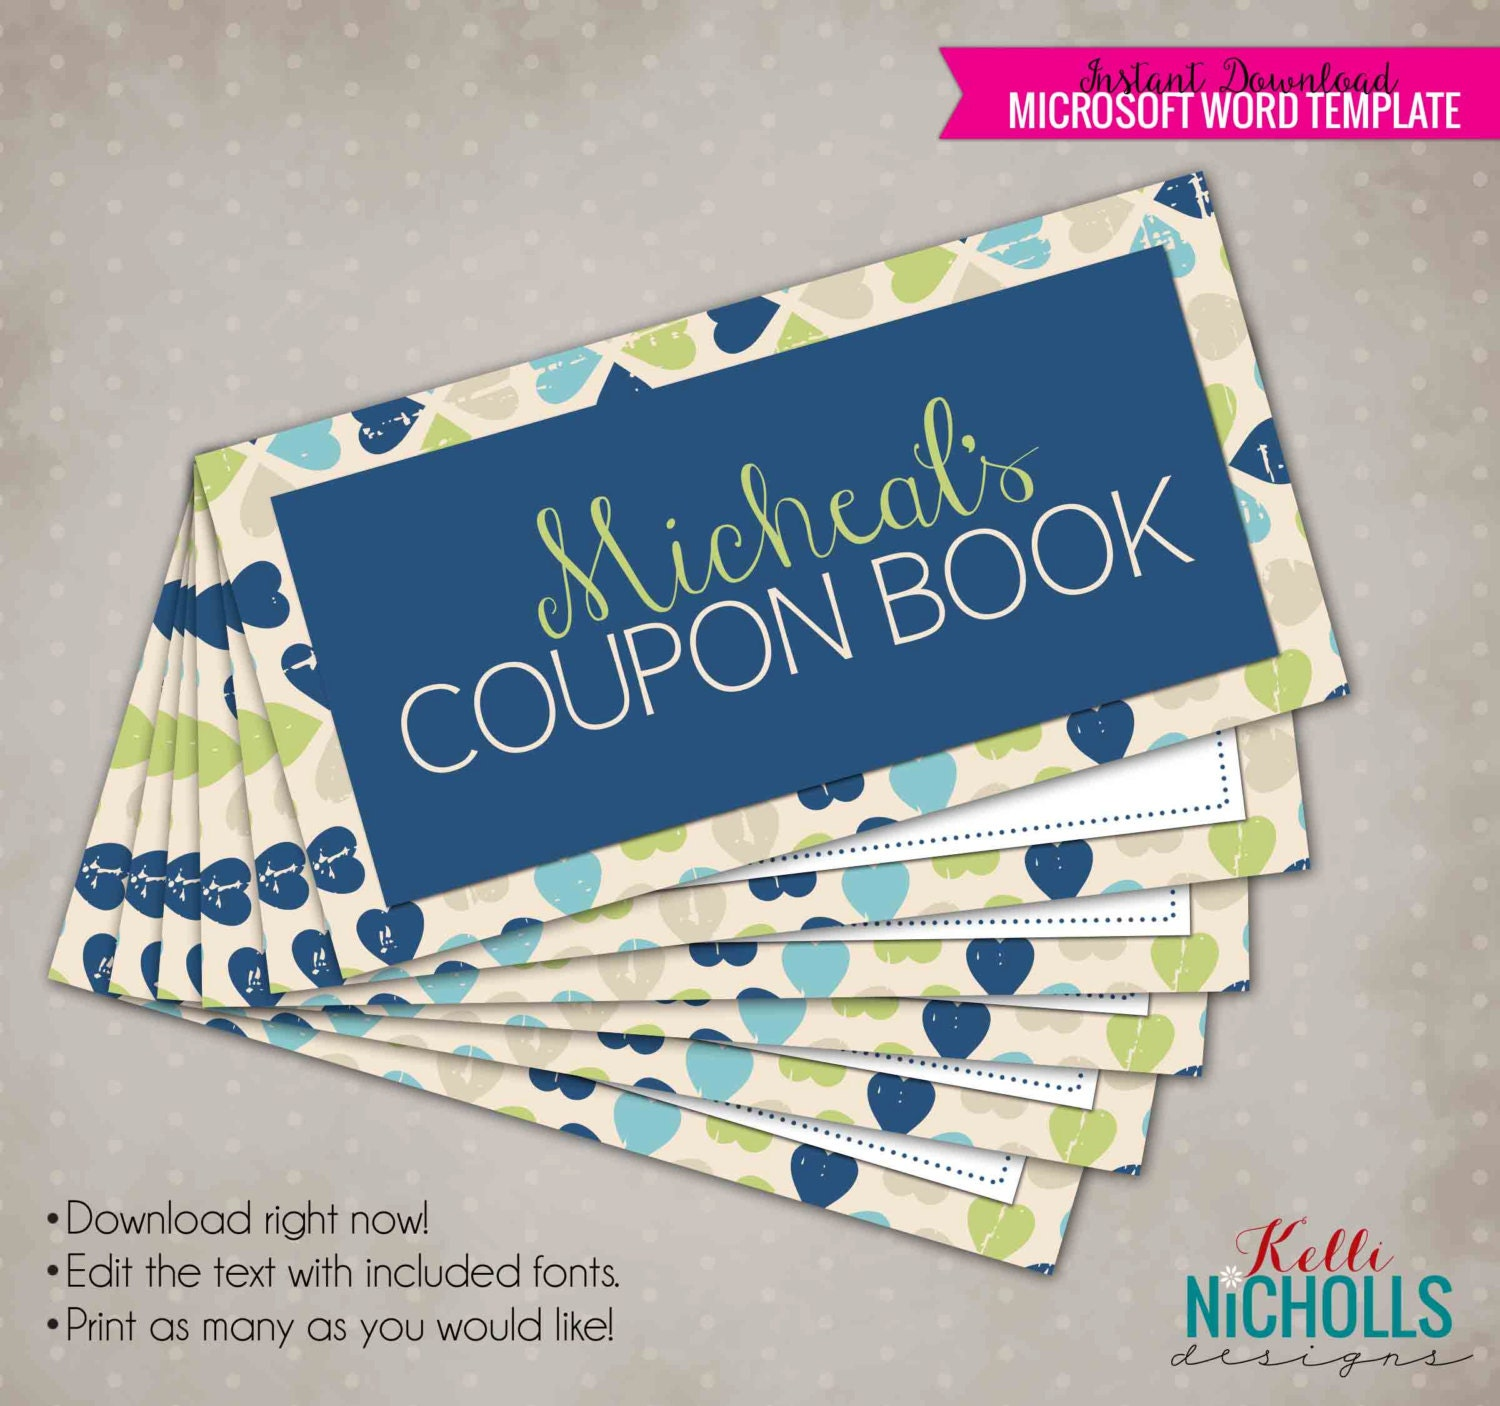 coupon book template for husband - printable valentine 39 s day custom coupon book gift for